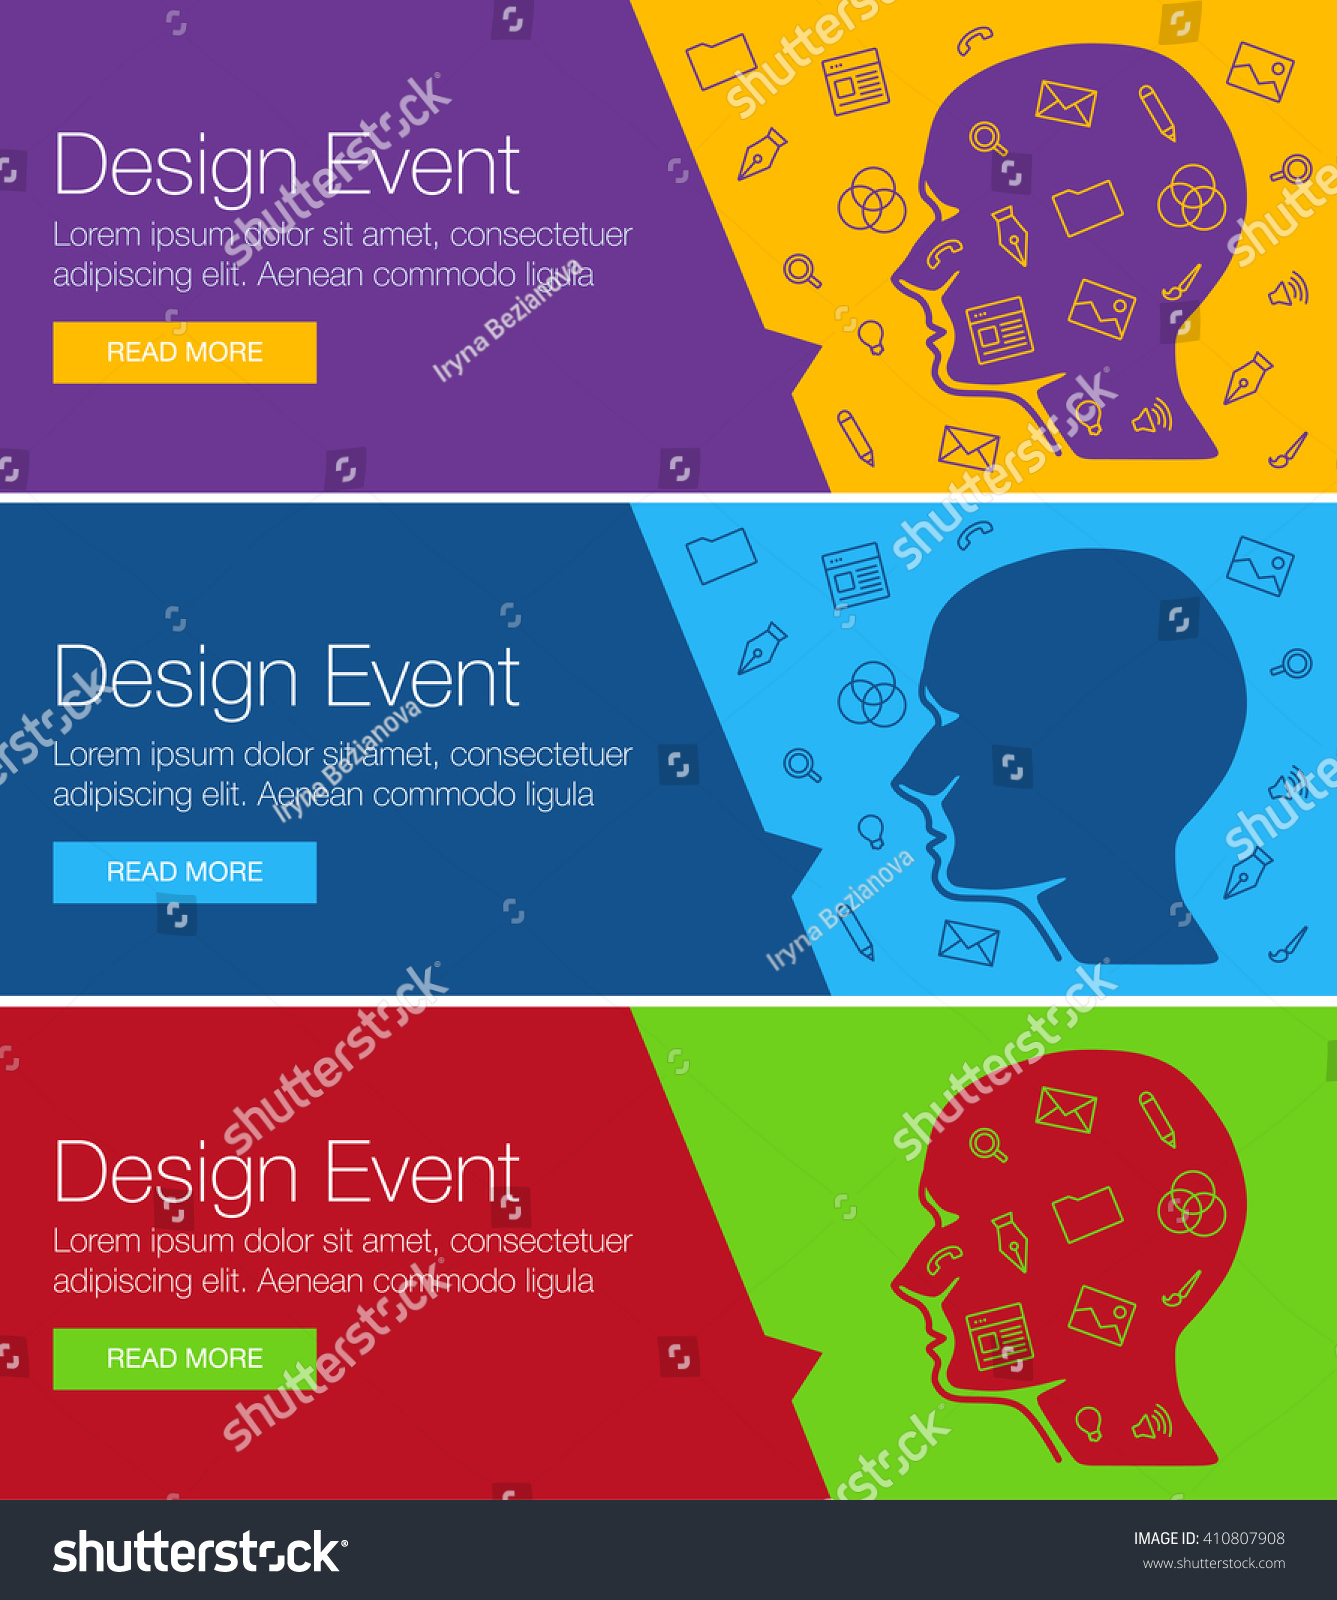 Poster Design Ideas 40 cool inspiring poster designs Poster Design For Event Online Course Training Workshop Banner Design Of Ideas